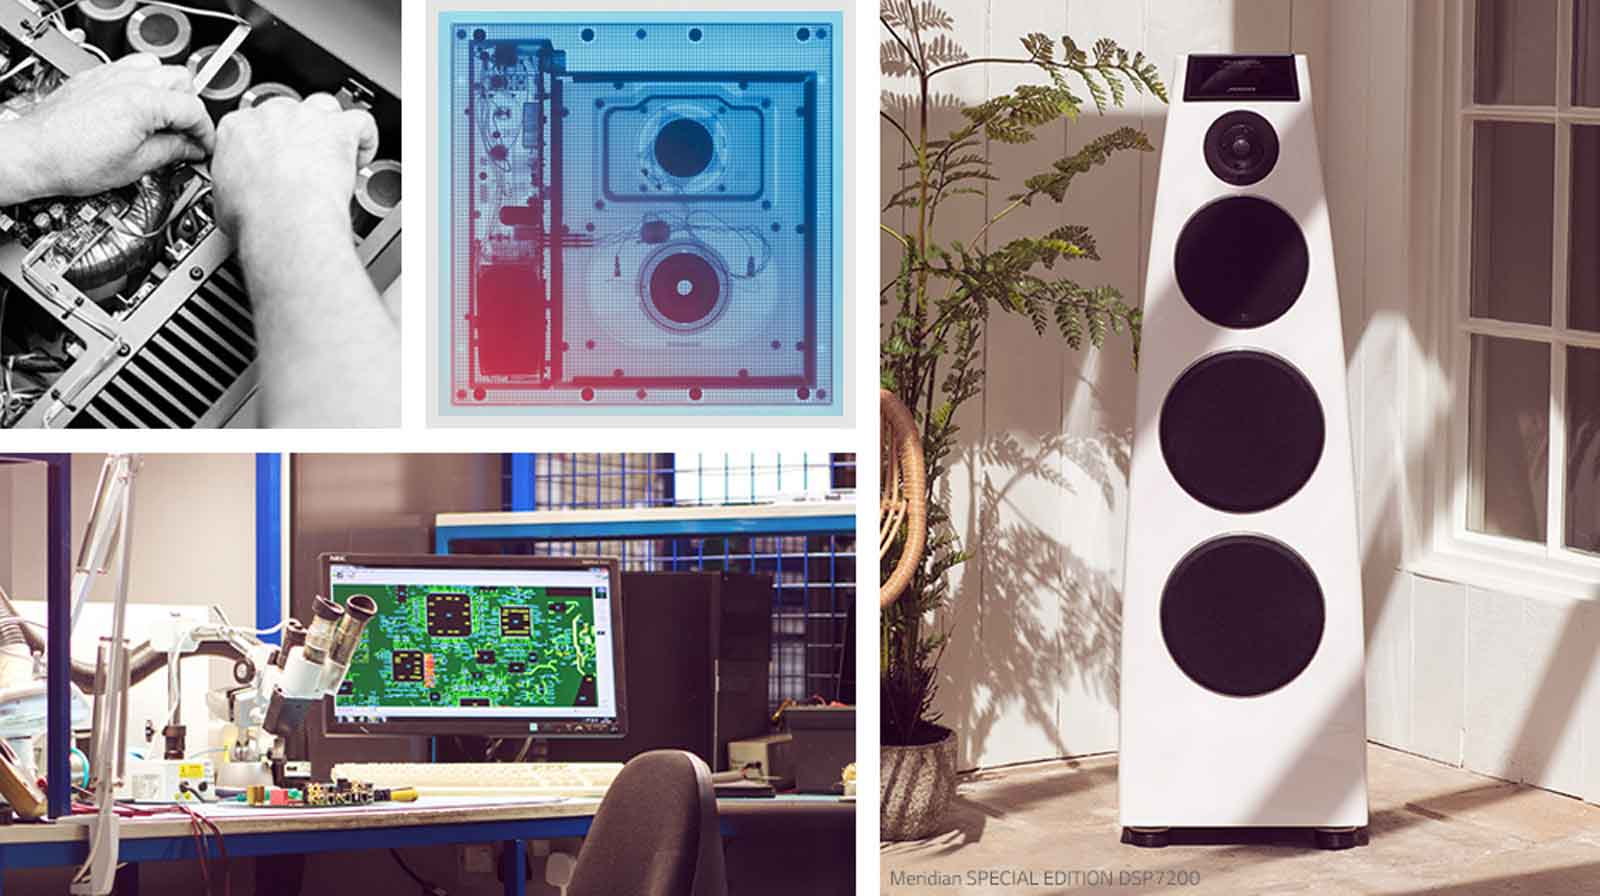 Collage. Clockwise from top-left: two images of Meridian internal hardware, a white Meridian speaker, and Meridian R&D desk